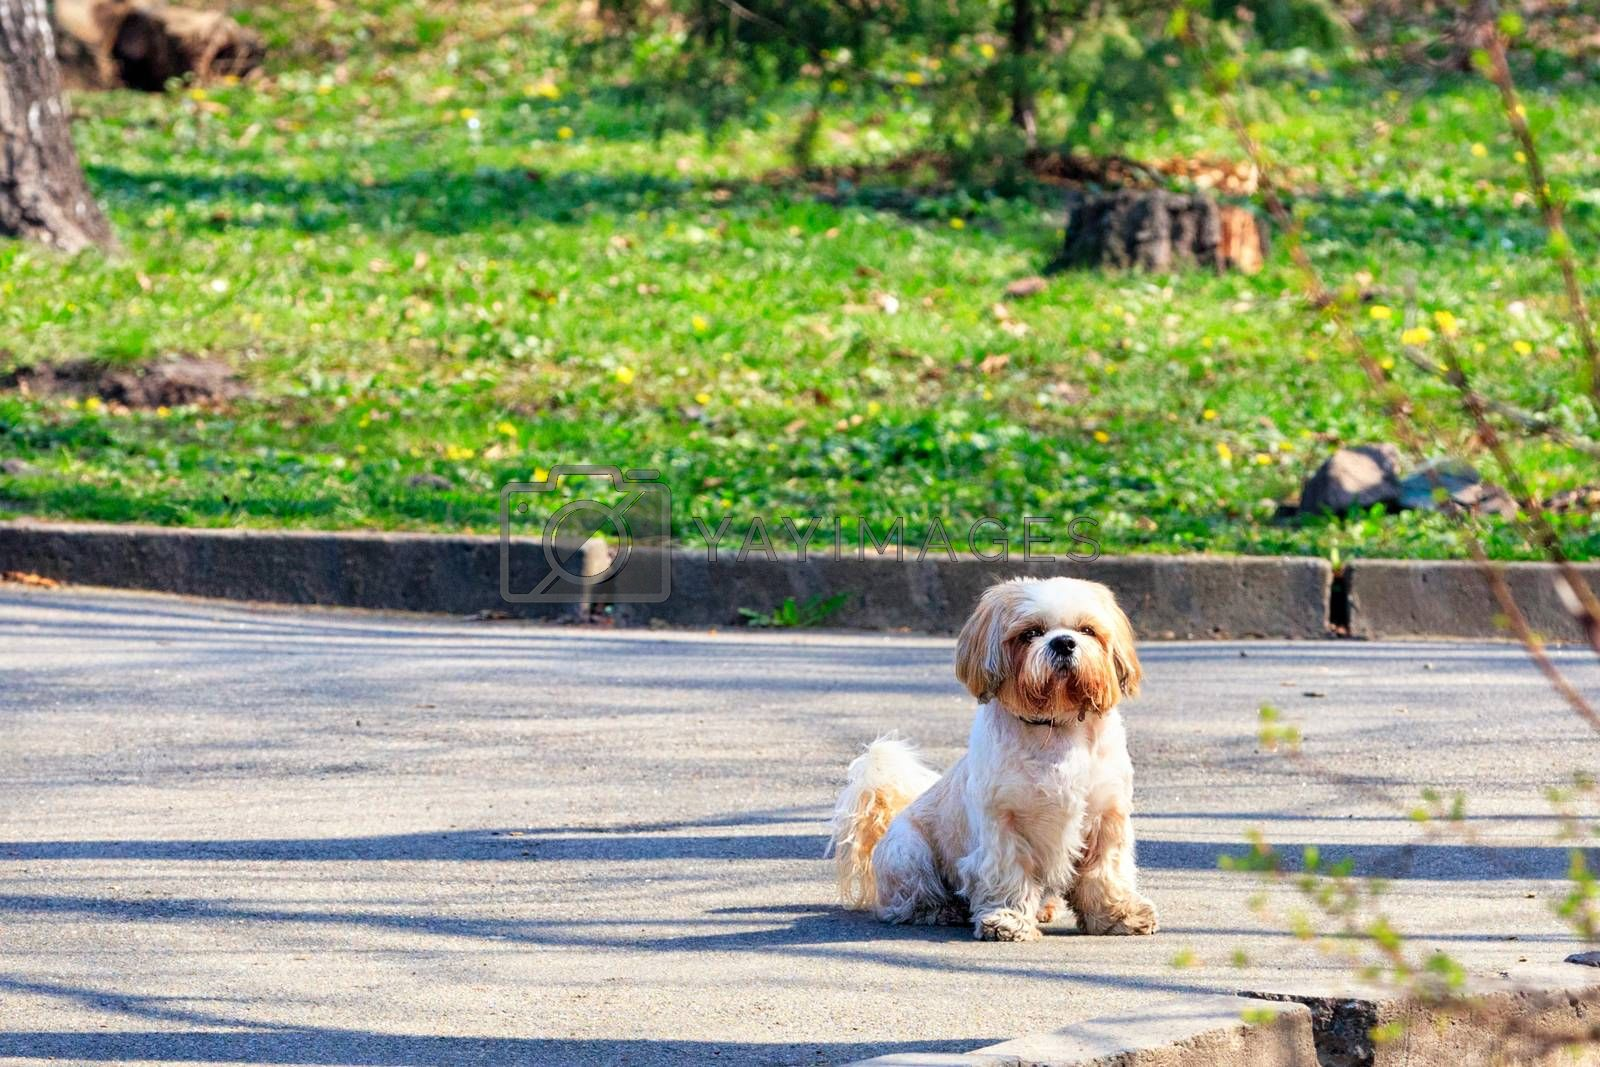 Shitsu funny hairy dog is sitting on the asphalt sidewalk against the background of a city park and green grass in blur and is carefully looking forward on a sunny spring day, image with copy space.